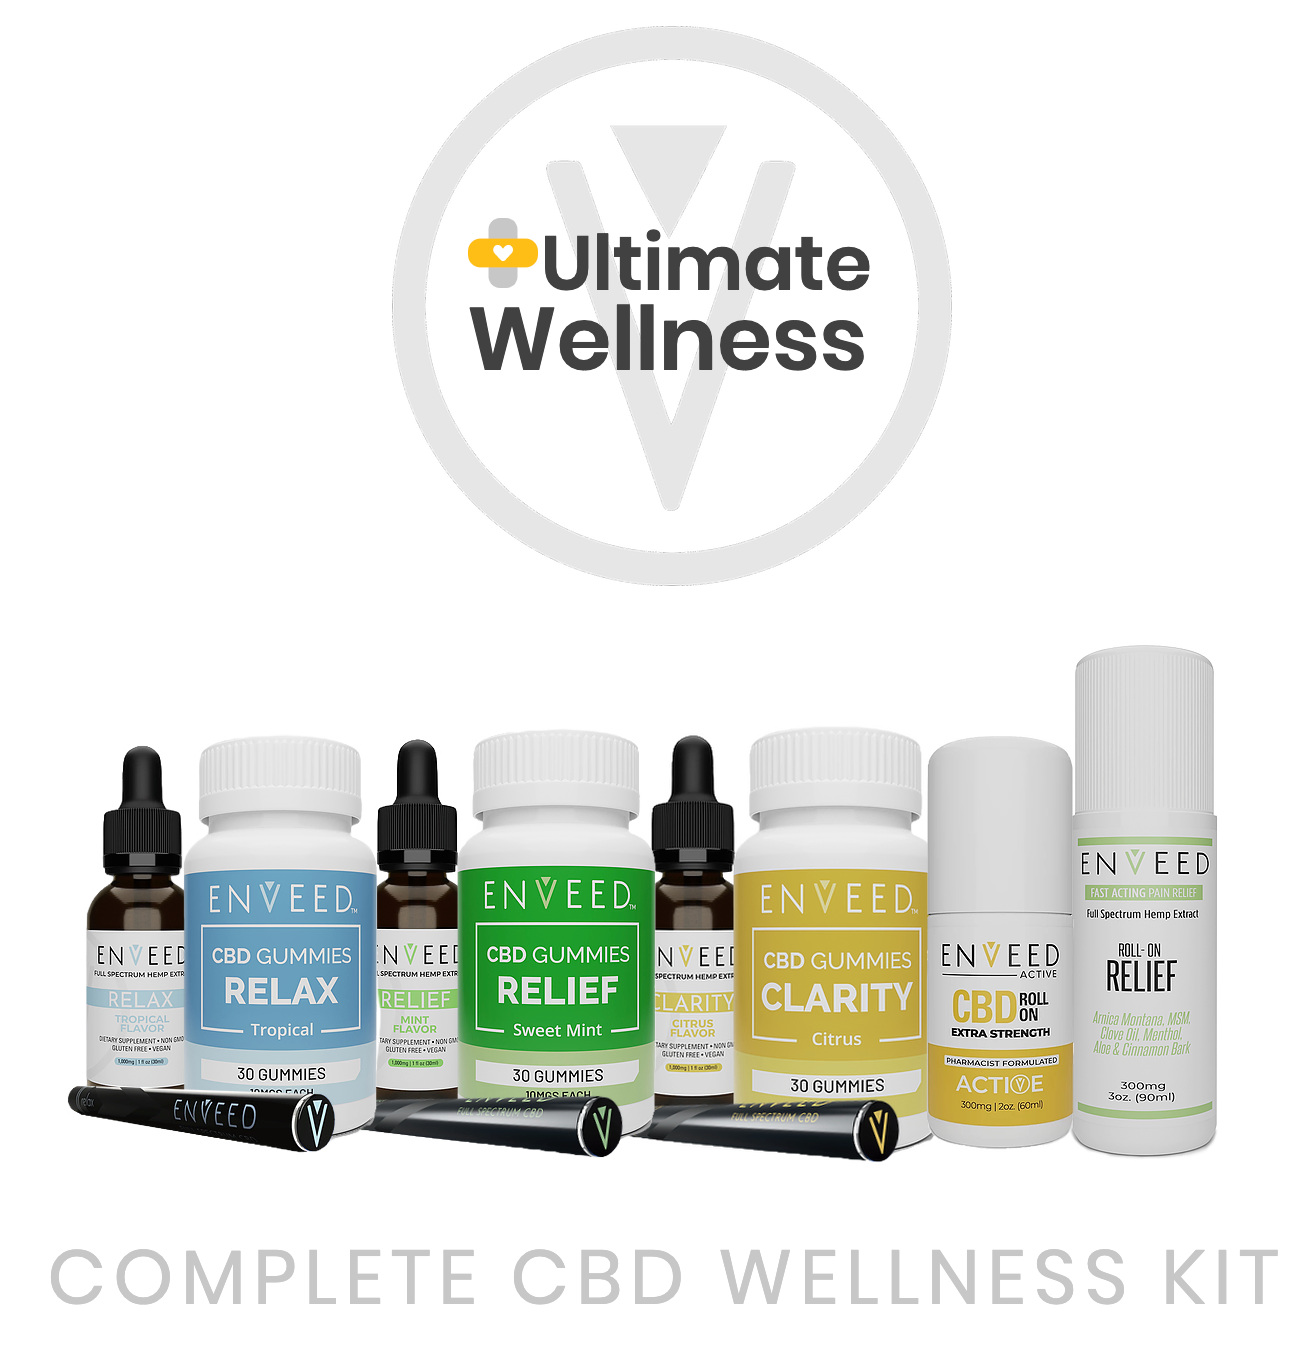 The Ultimate Wellness Kit